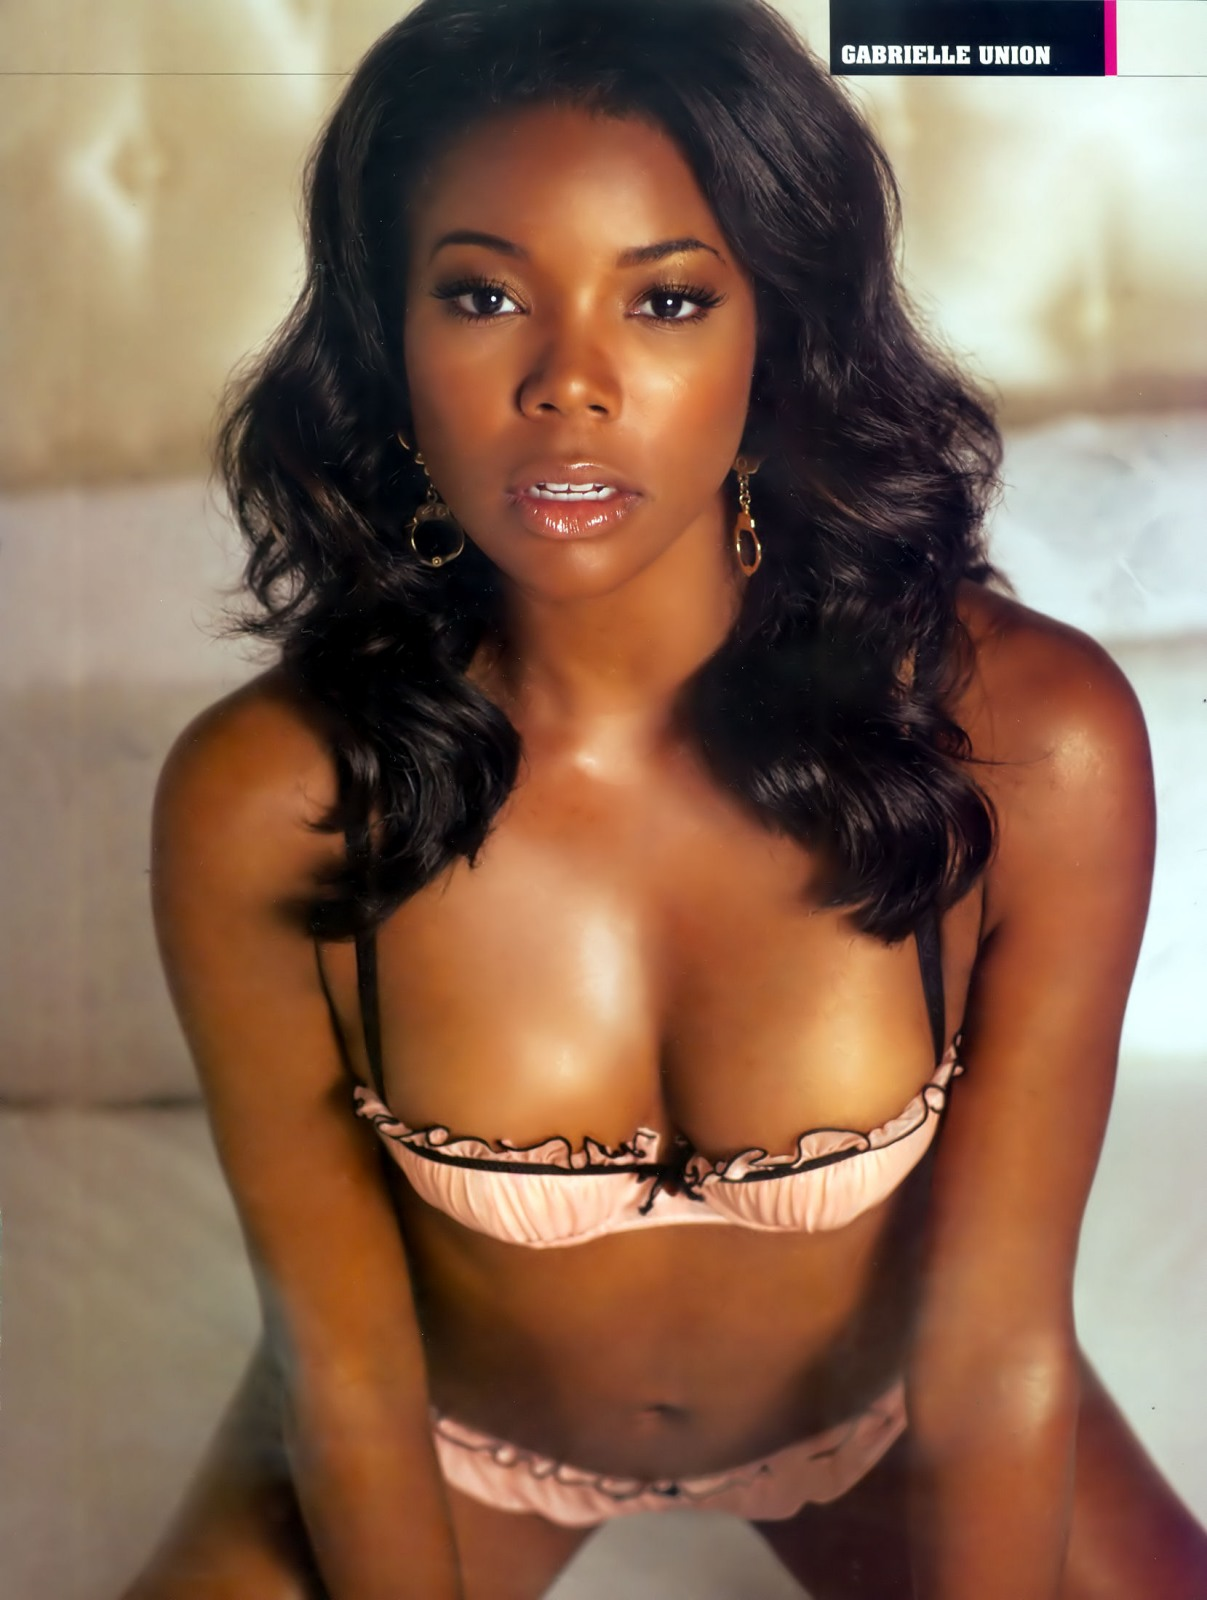 joco sob . net - voice of johnson county: gabrielle union hot ?